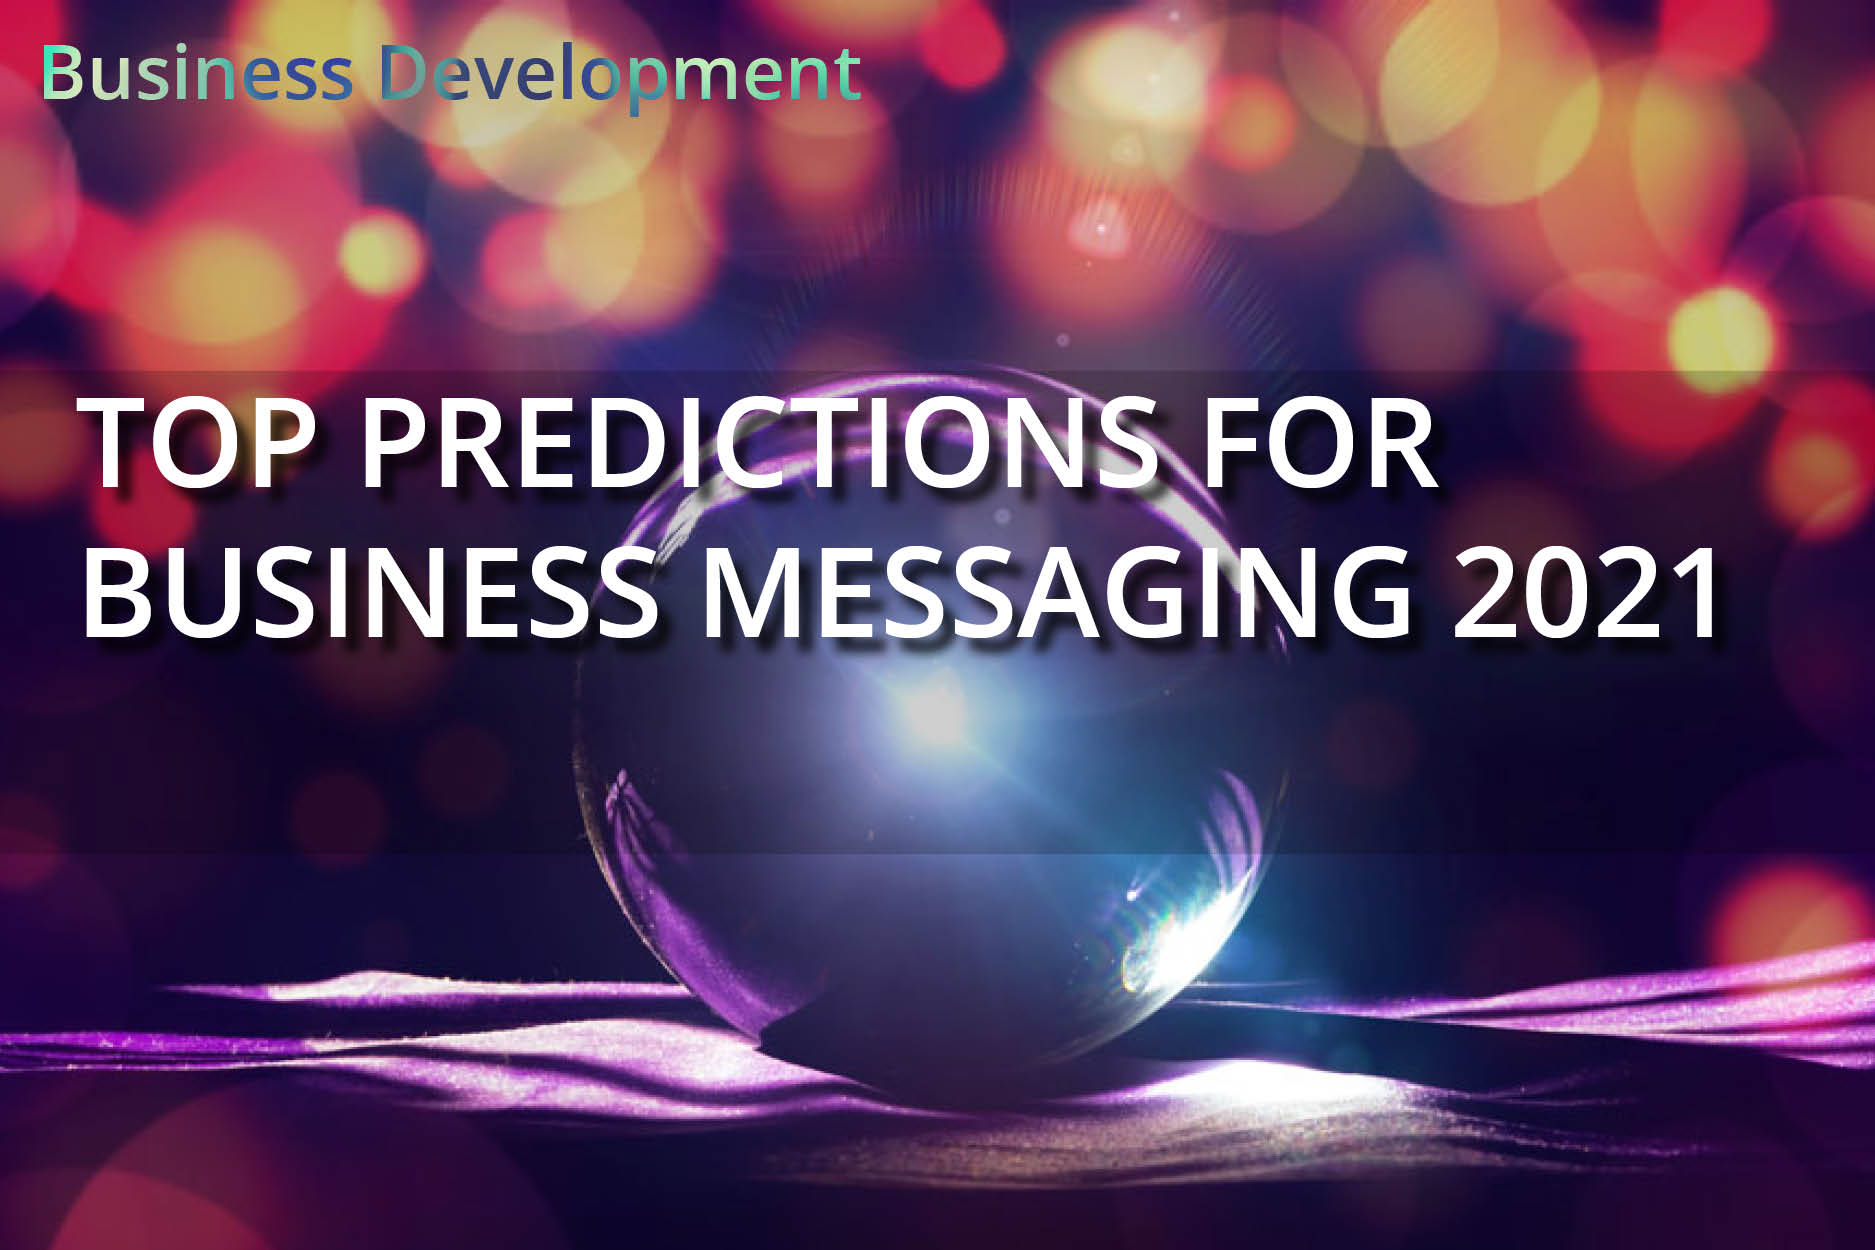 Top Predictions for Business Messaging 2021